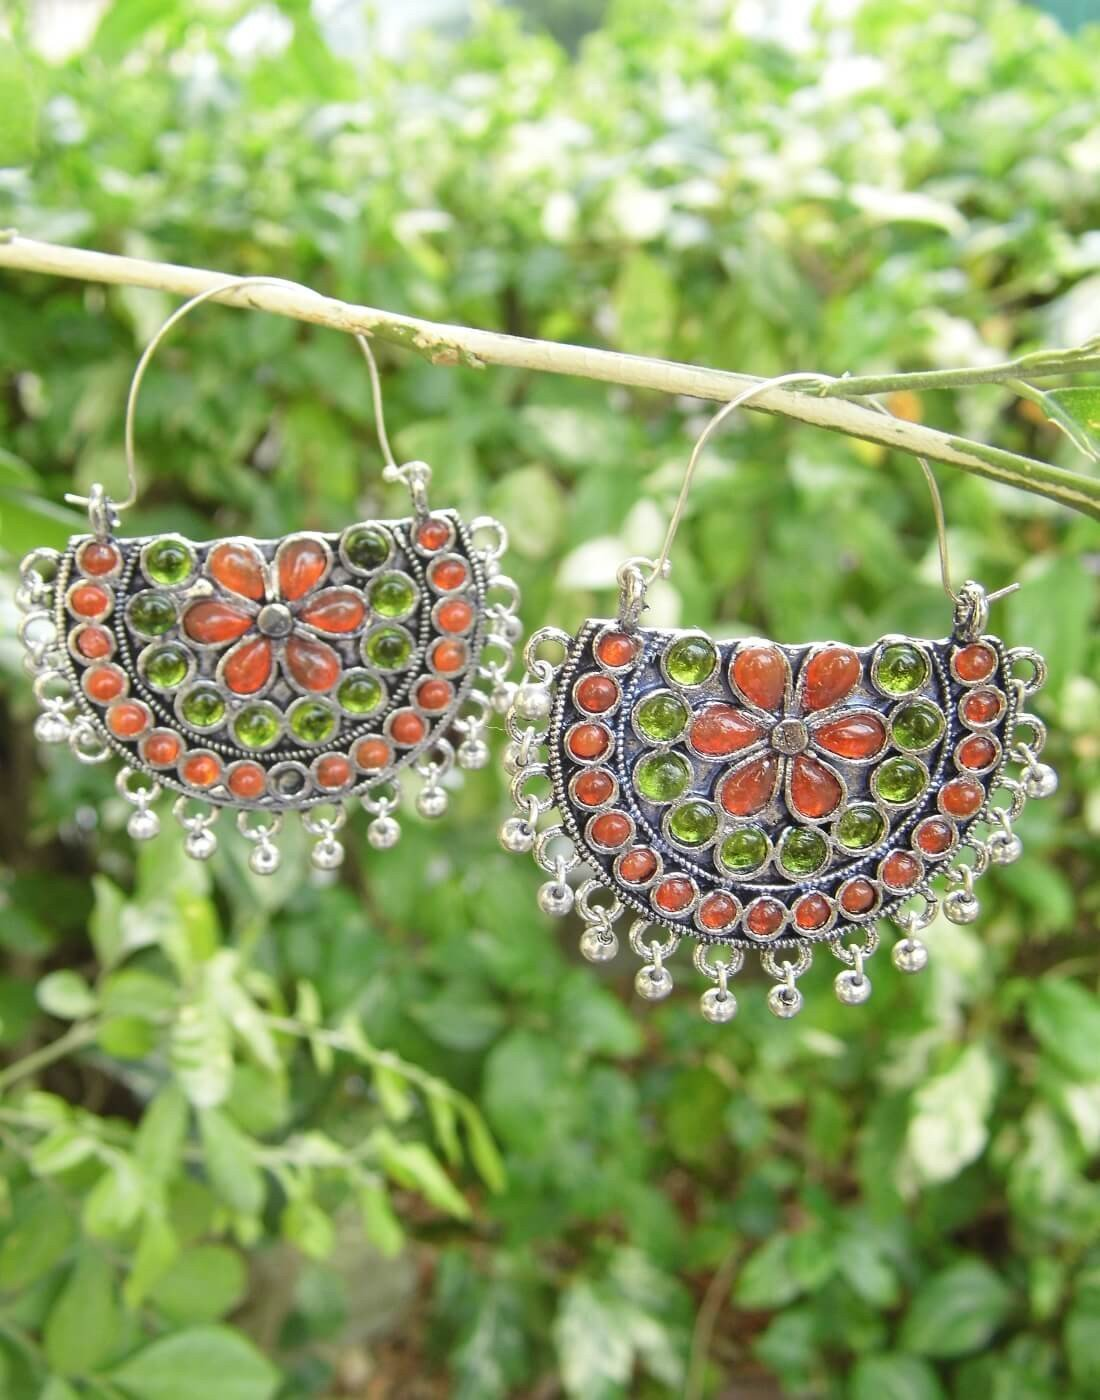 Afghani Earrings/Chandbalis In Alloy Metal 22